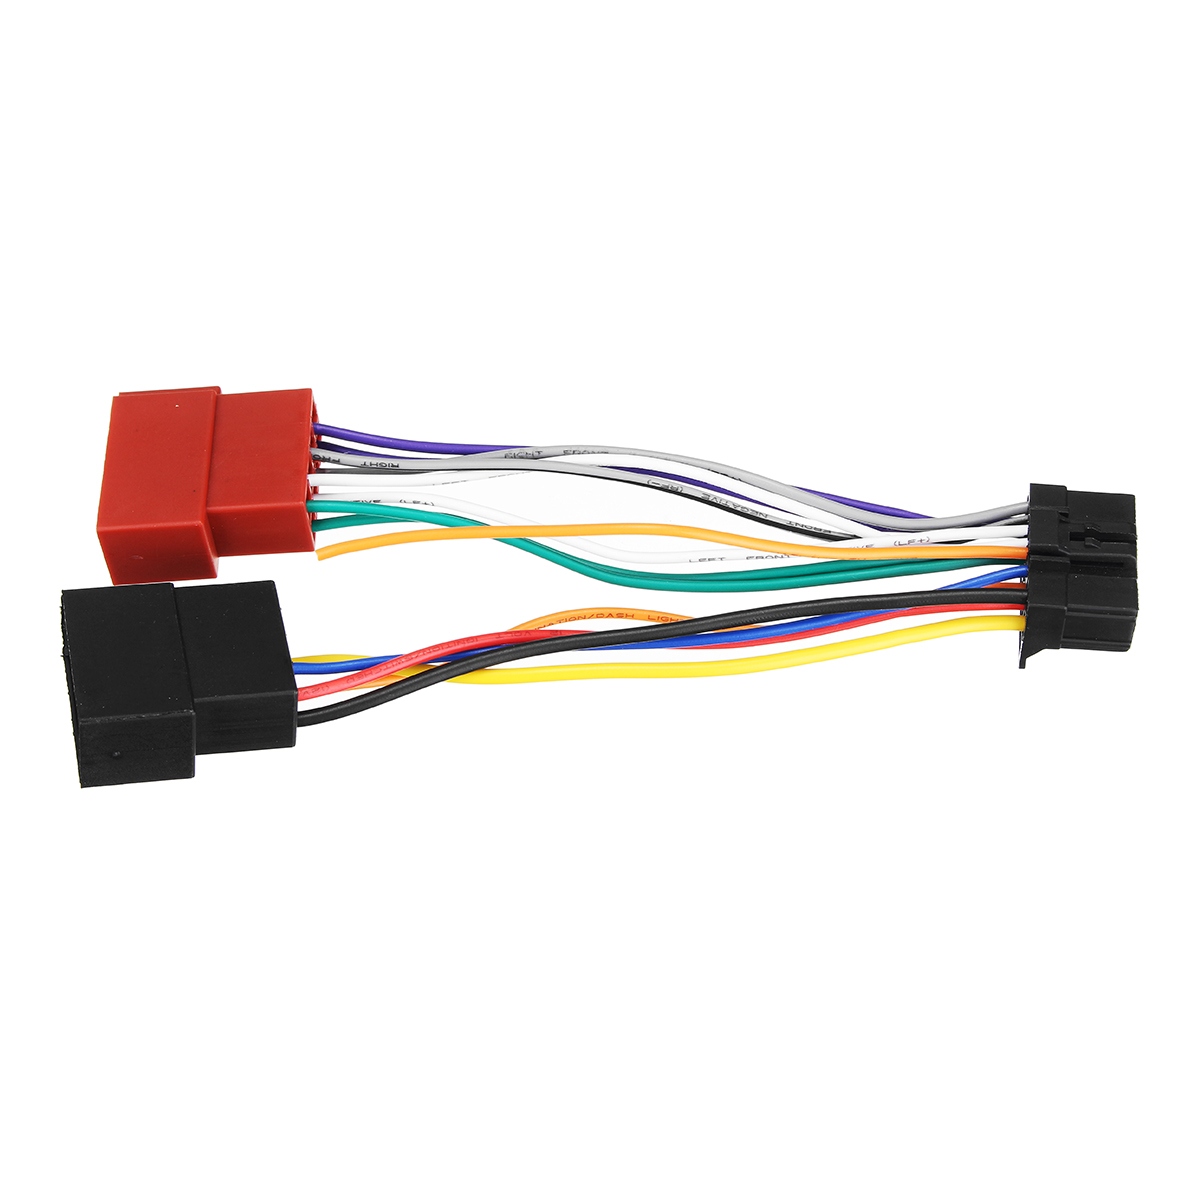 small resolution of car stereo radio iso wiring harness connector 16 pin pi100 for pioneer 2003 on in cables adapters sockets from automobiles motorcycles on